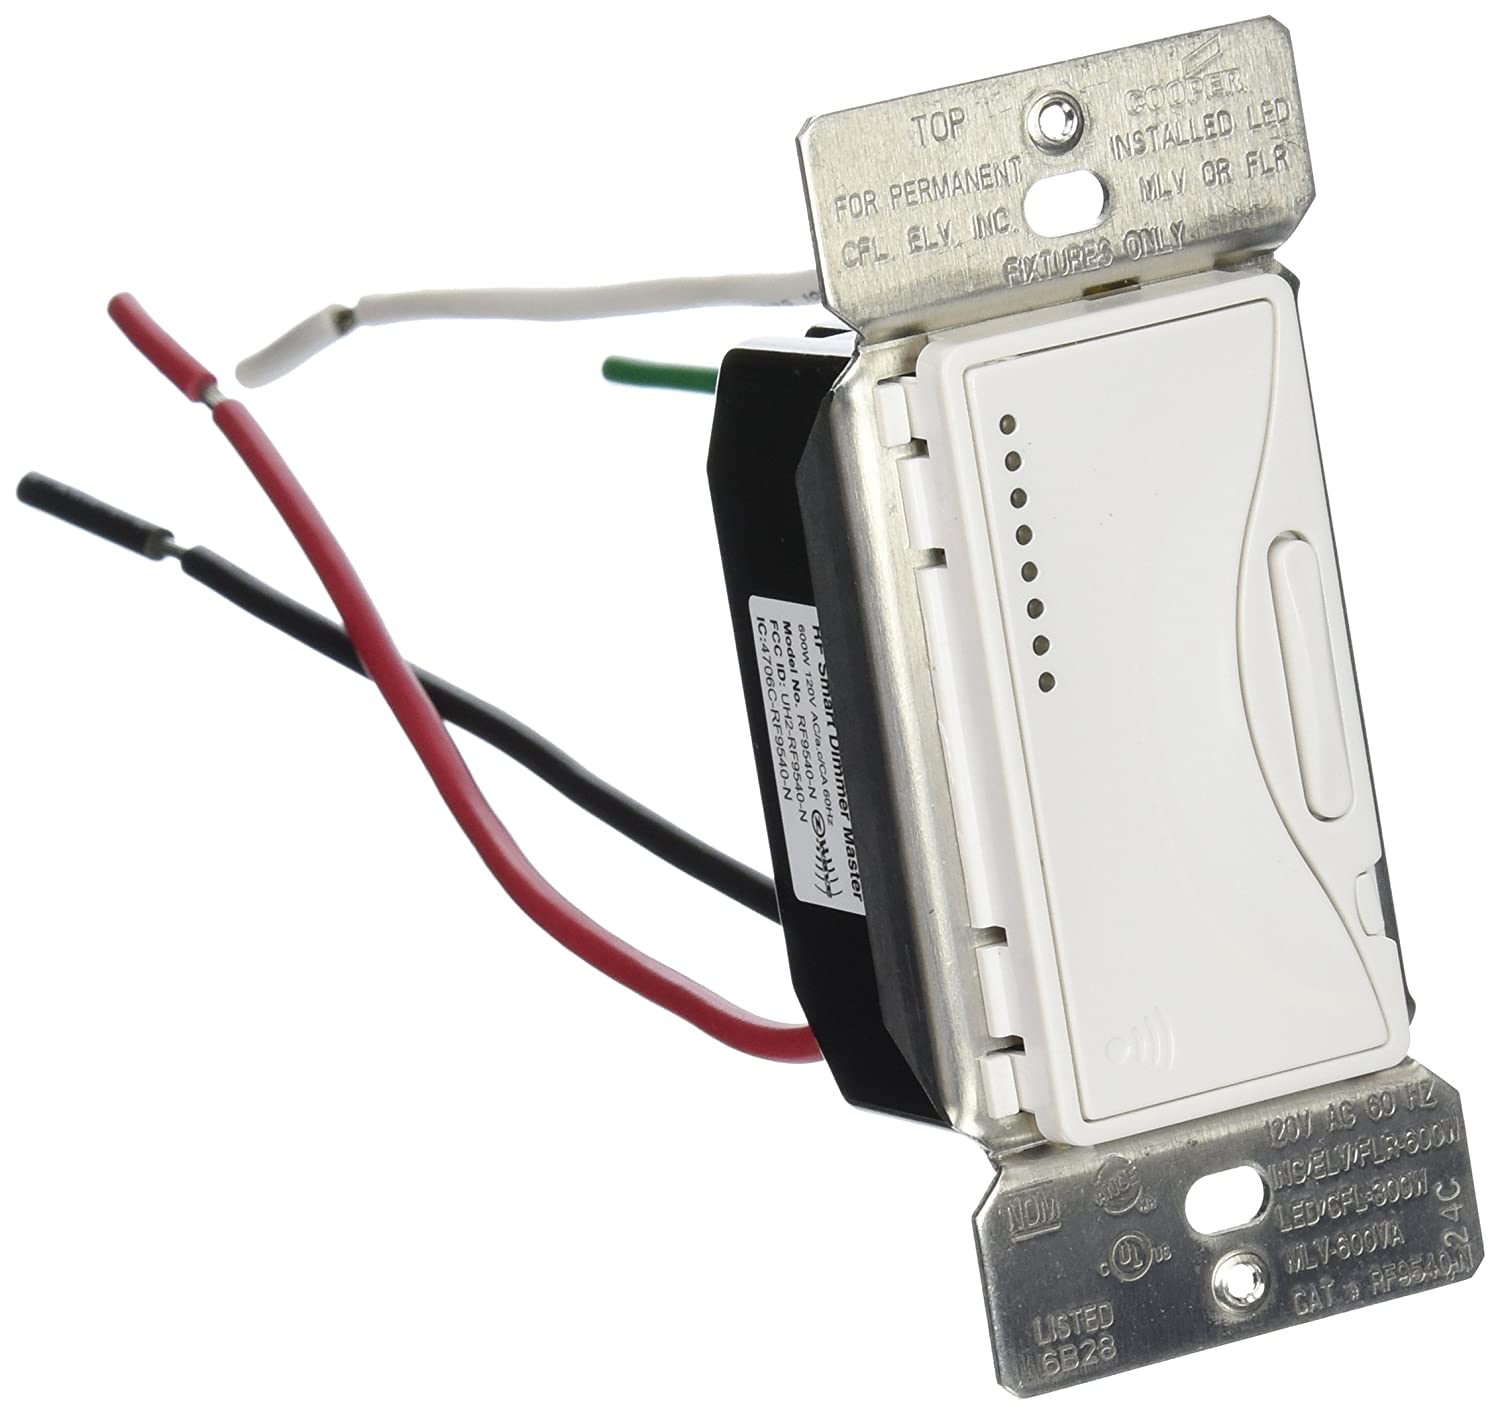 81qDipRg83L._SL1500_ eaton rf9540 naw aspire single pole multi location master dimmer cooper smart dimmer wiring diagram at soozxer.org